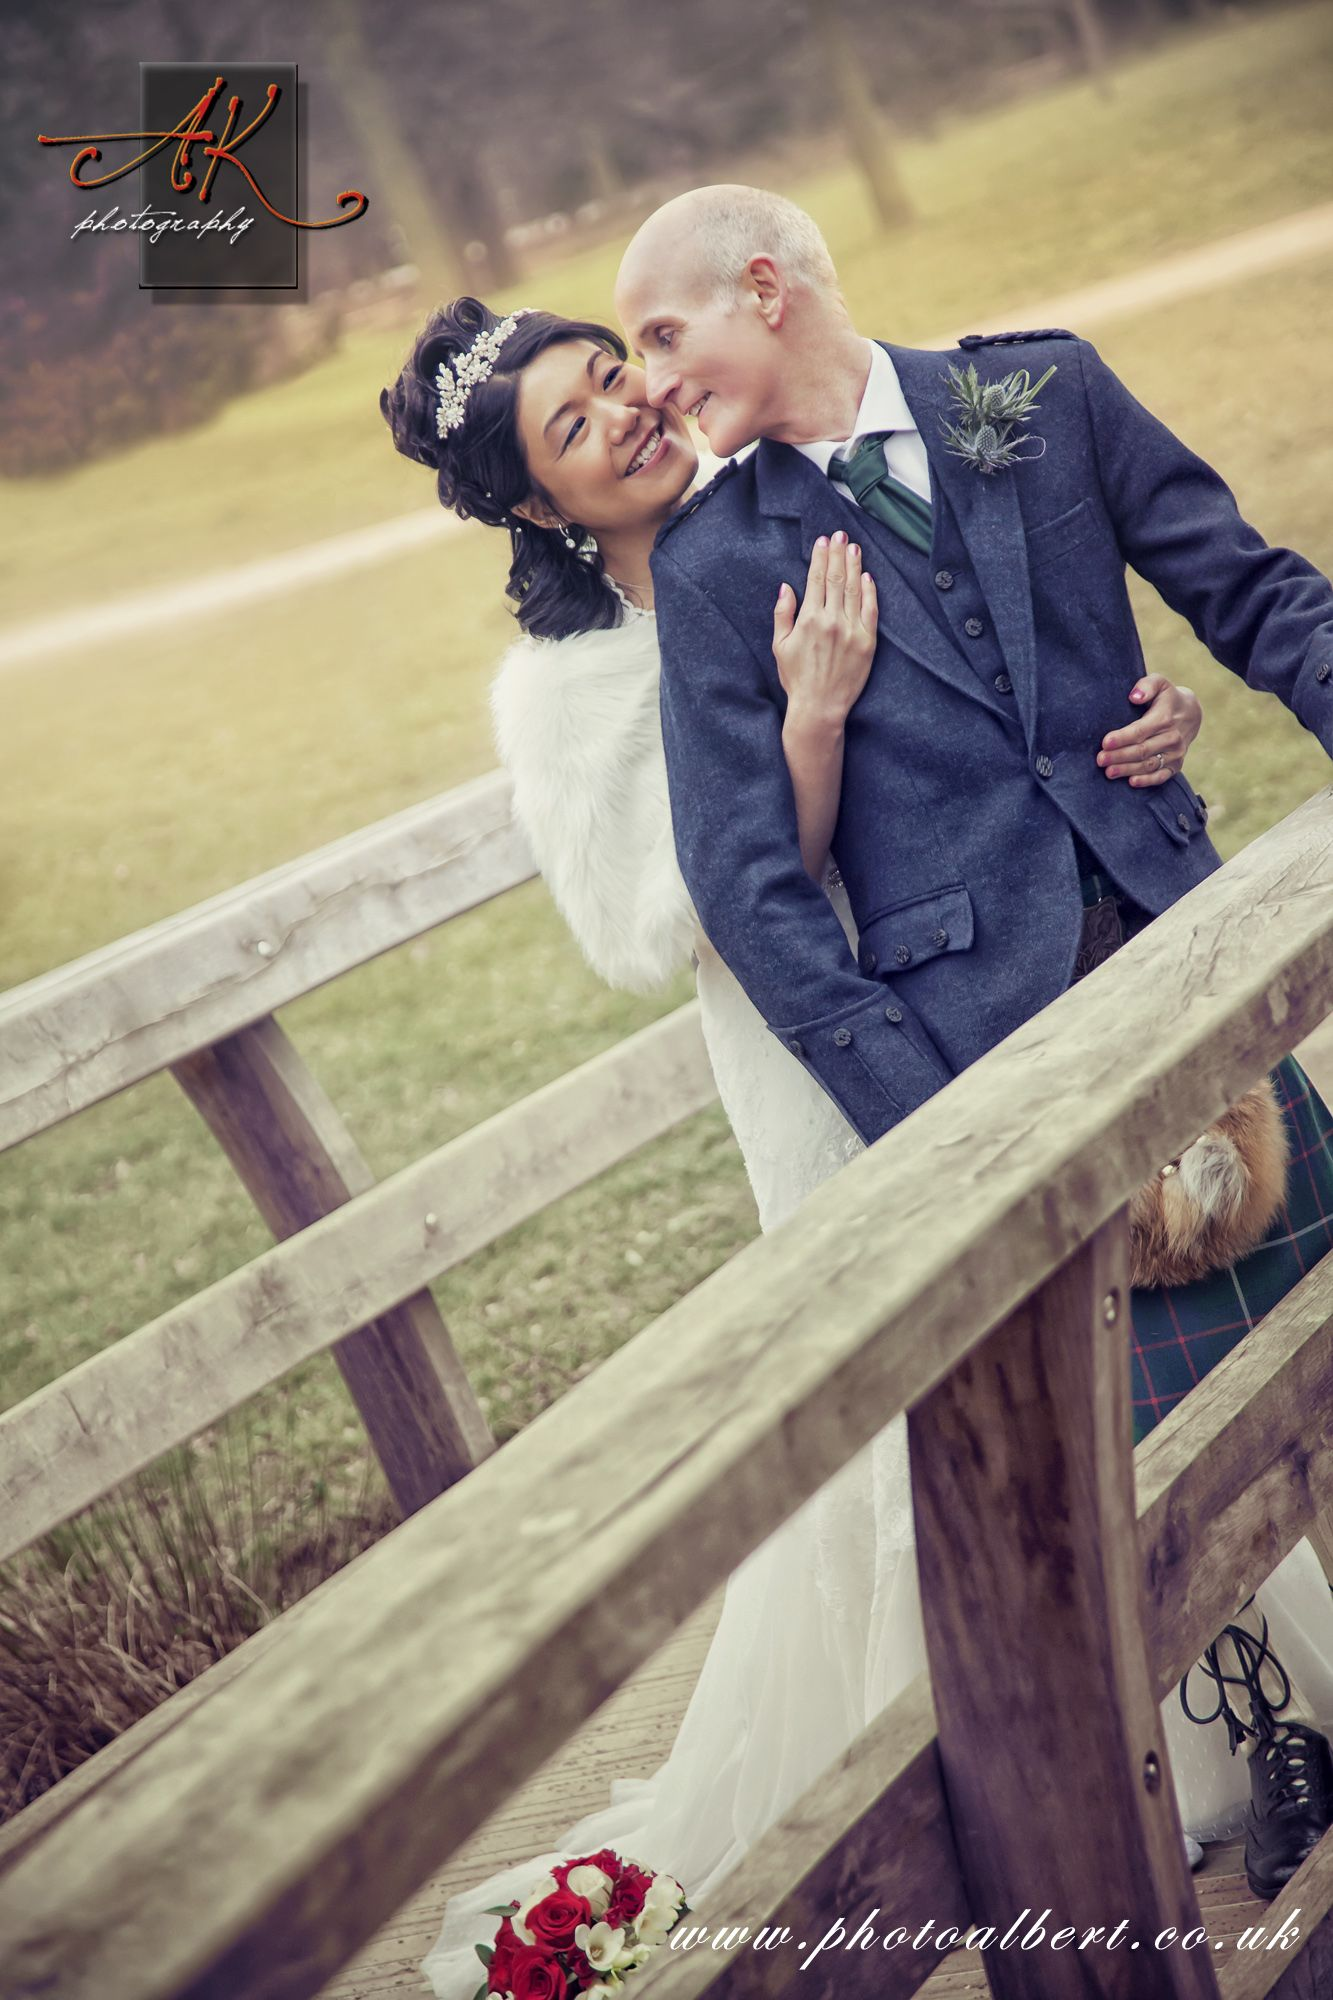 Bride And Groom Wedding Photo Shoot At Walpole Park In Ealing By Photographer London